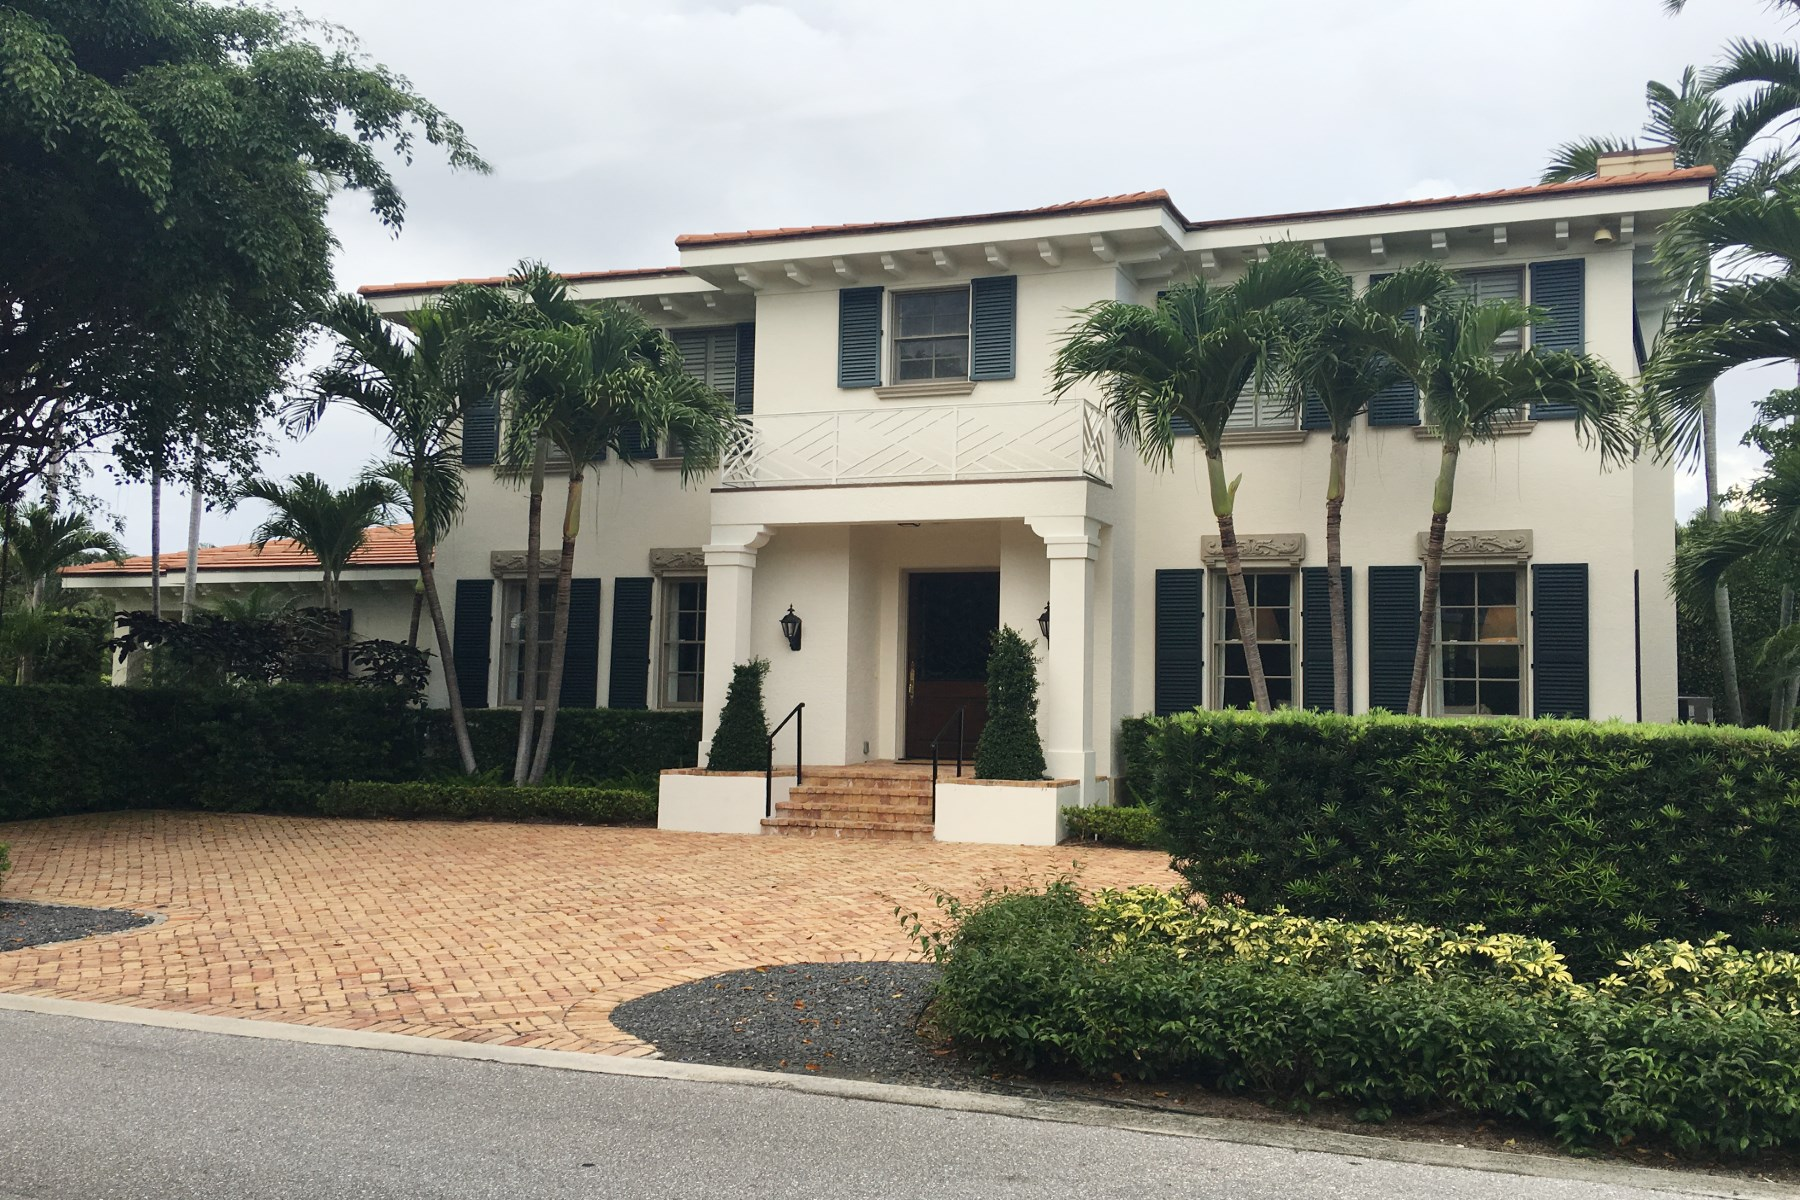 Single Family Home for Sale at Perfection on North Lake Way 1263 N Lake Way North End, Palm Beach, Florida, 33480 United States